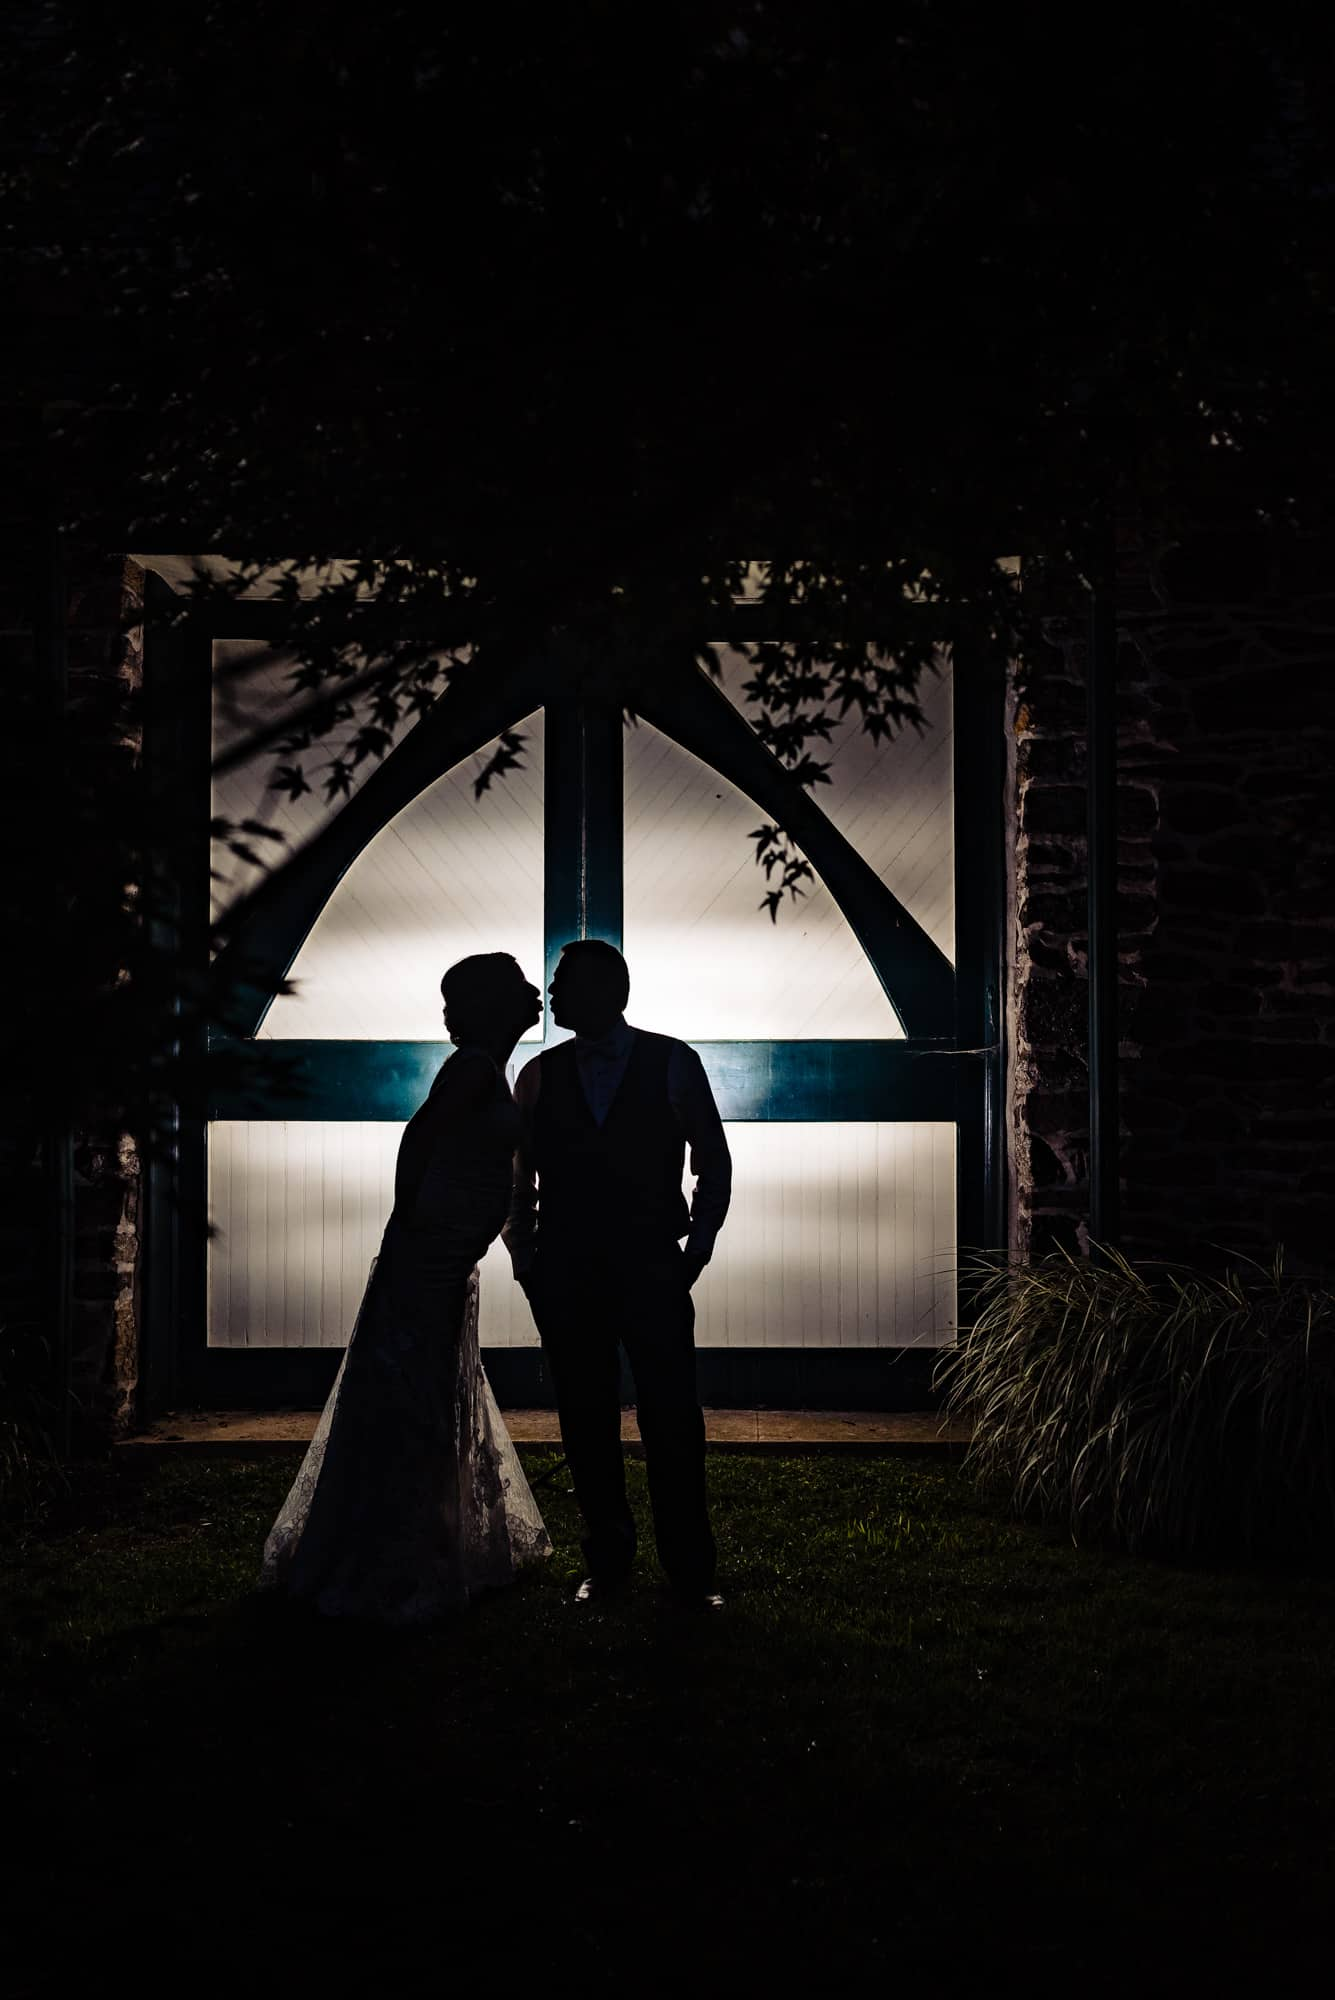 wedding day, silhouette of bride and groom about to kiss in front of two doors